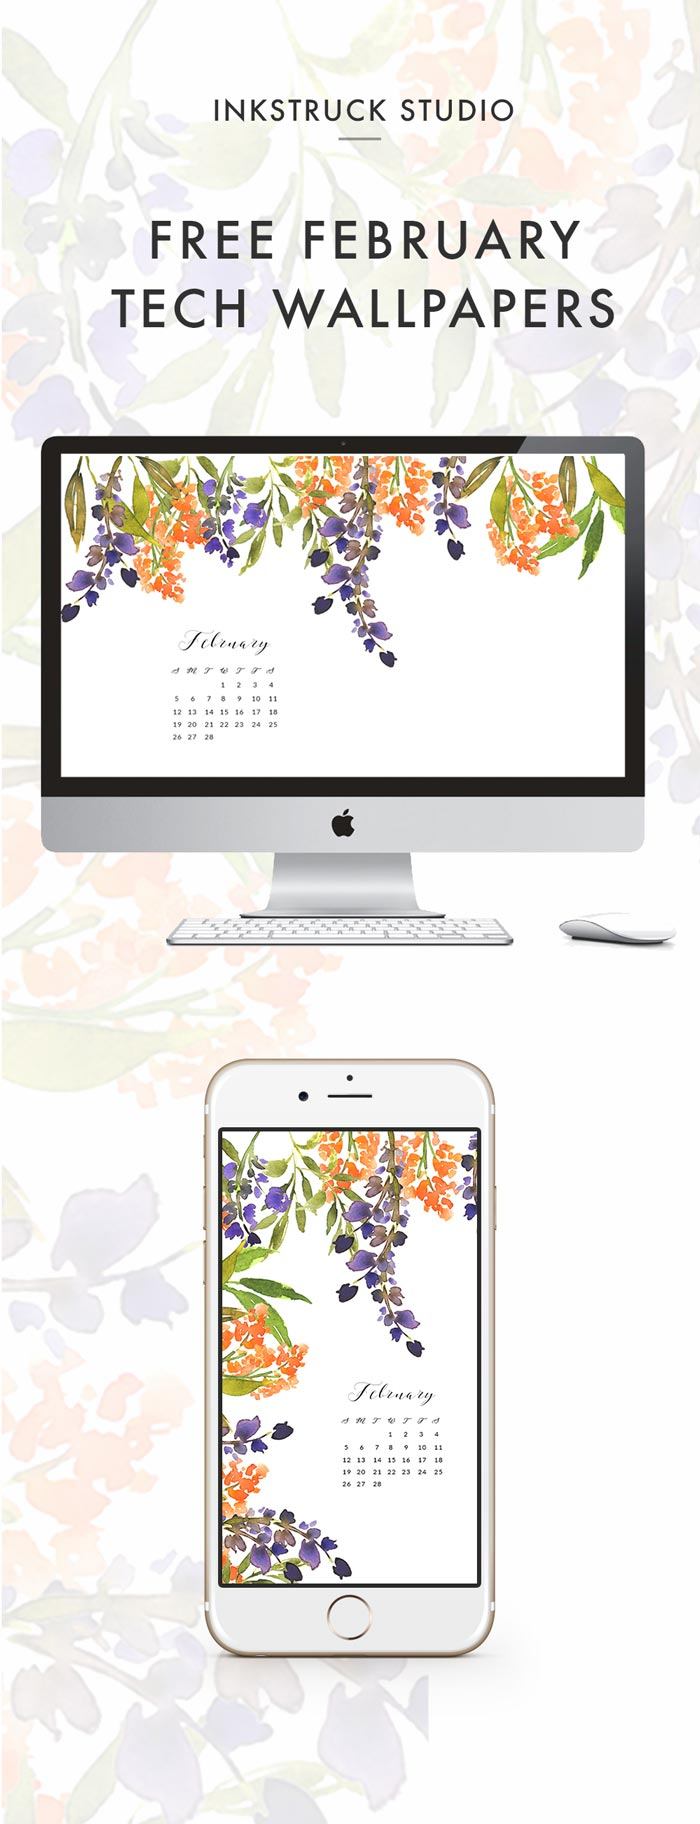 Time to change your desktop backgrounds! Grab my free watercolor wallpapers for February to dress your your phones and desktops - Inkstruck Studio